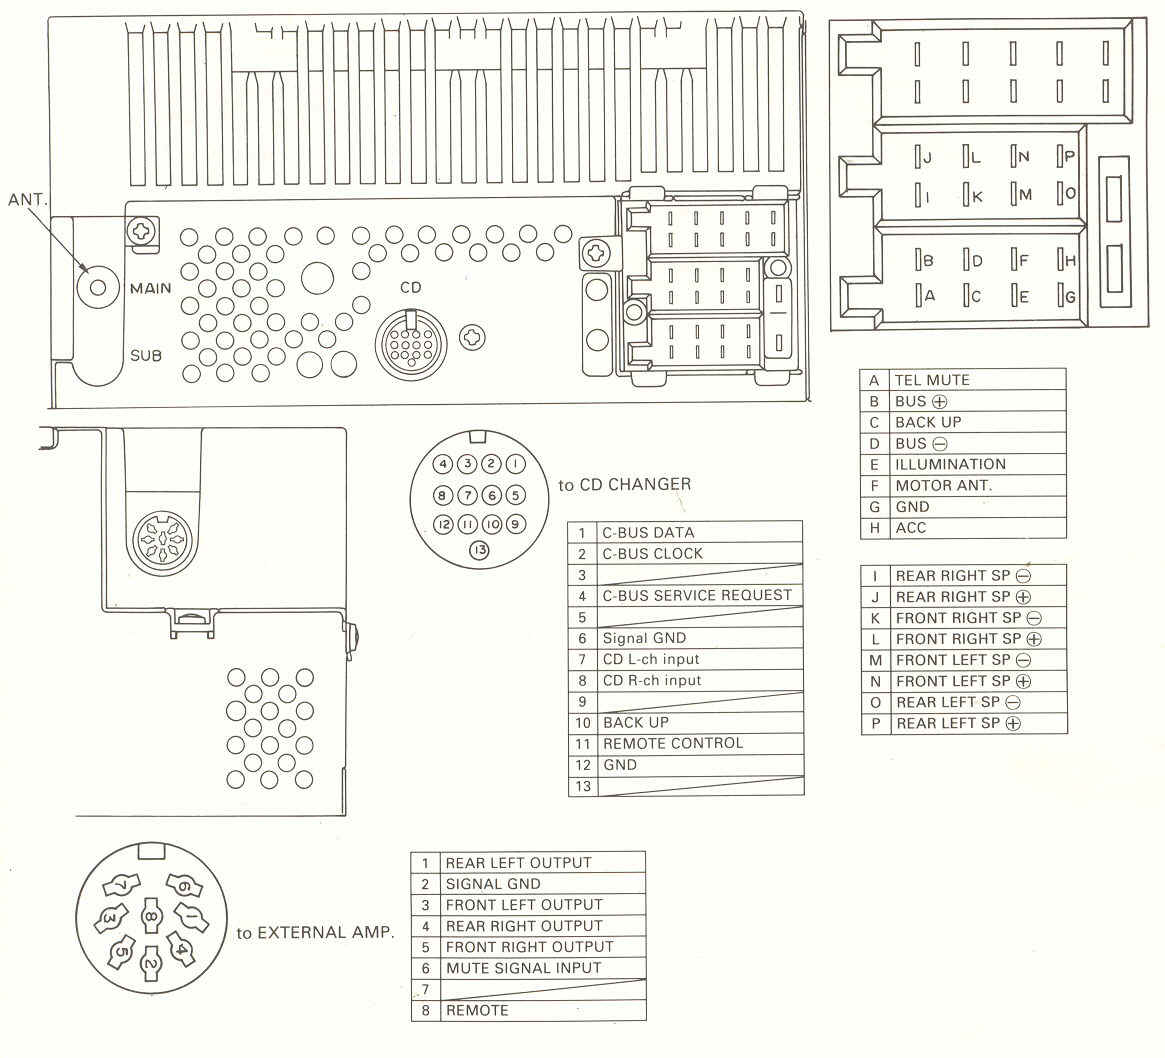 alpine car audio wiring diagram alpine image saab car radio stereo audio wiring diagram autoradio connector on alpine car audio wiring diagram